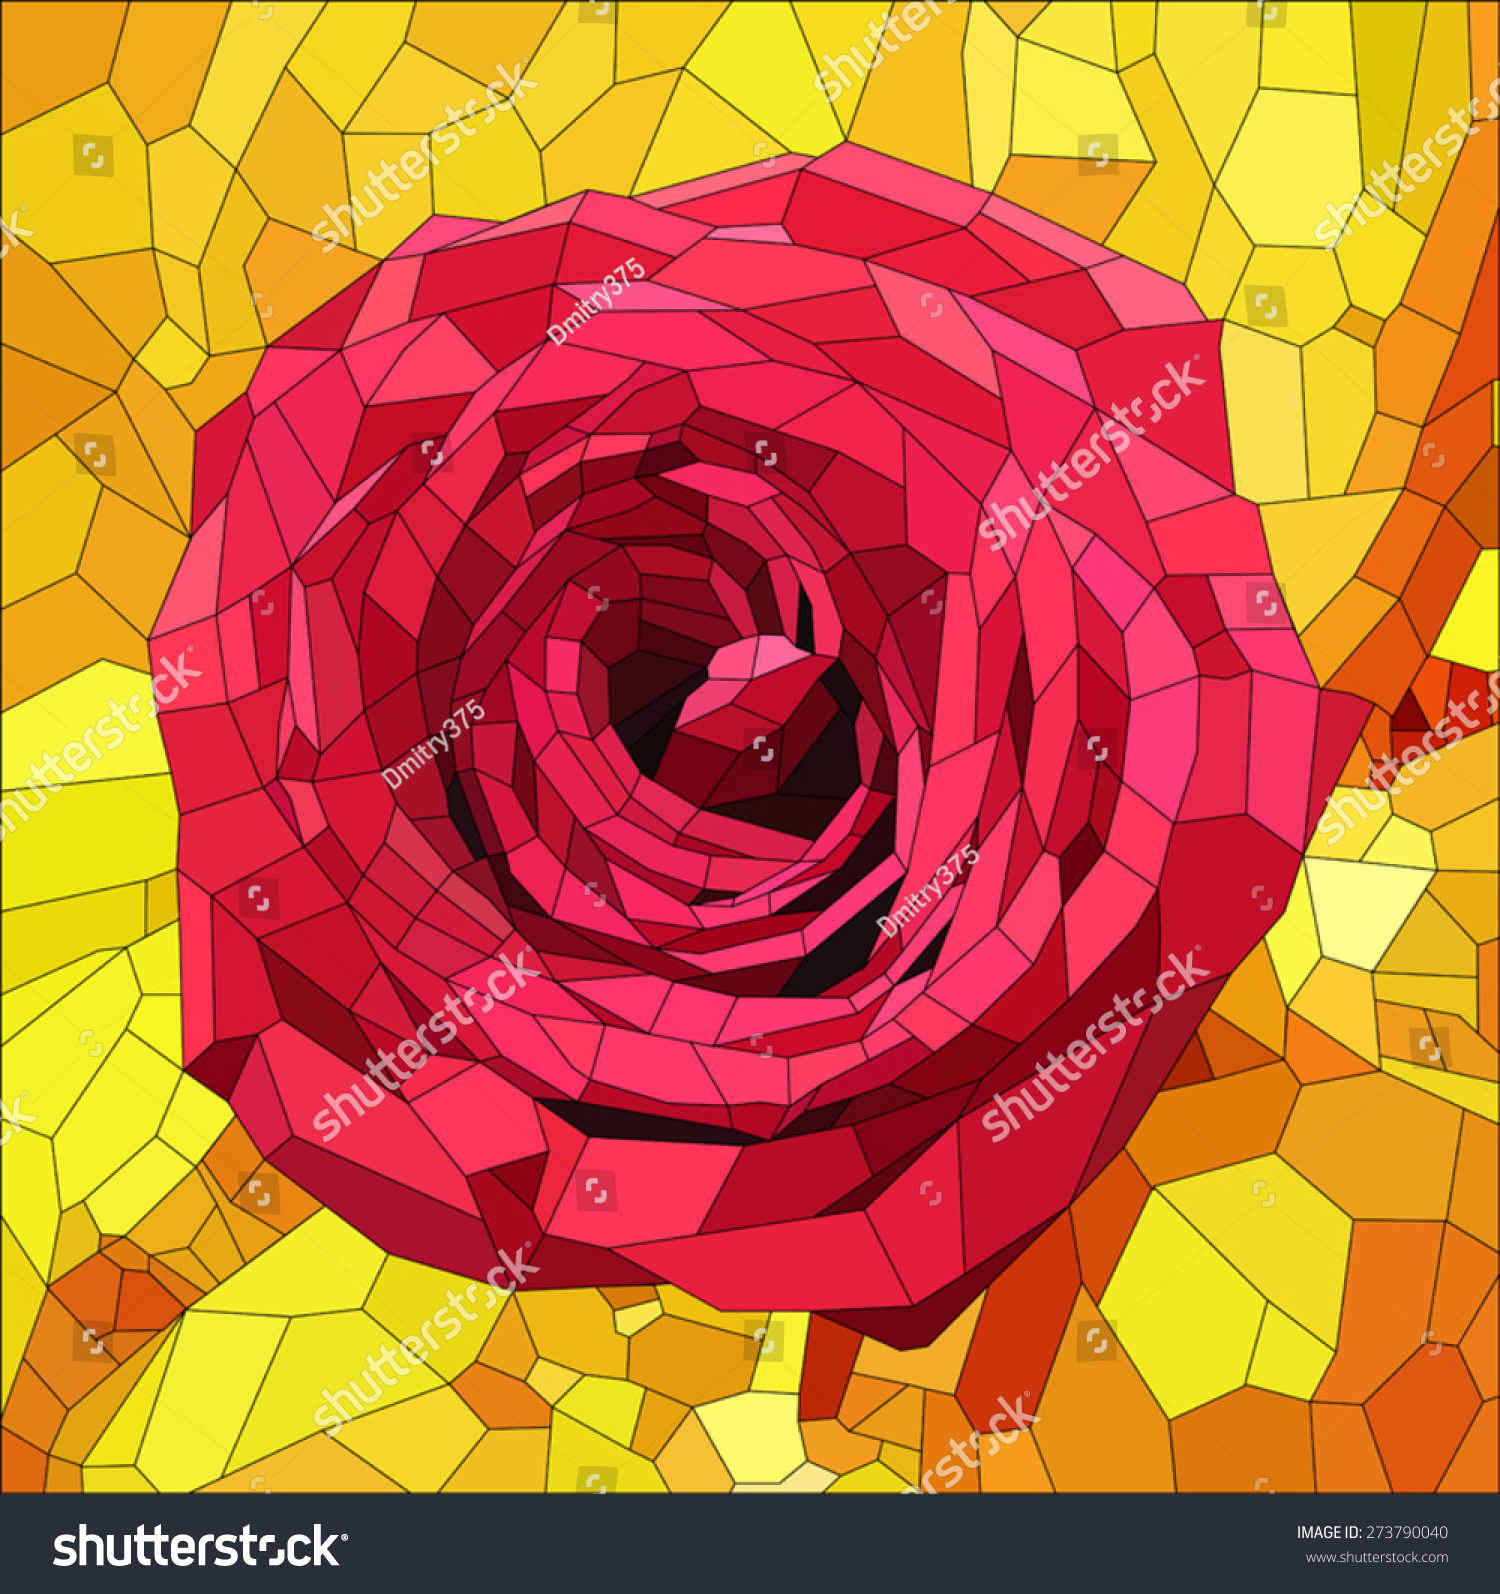 Red Stained Glass : Stained glass red rose on orange stock vector